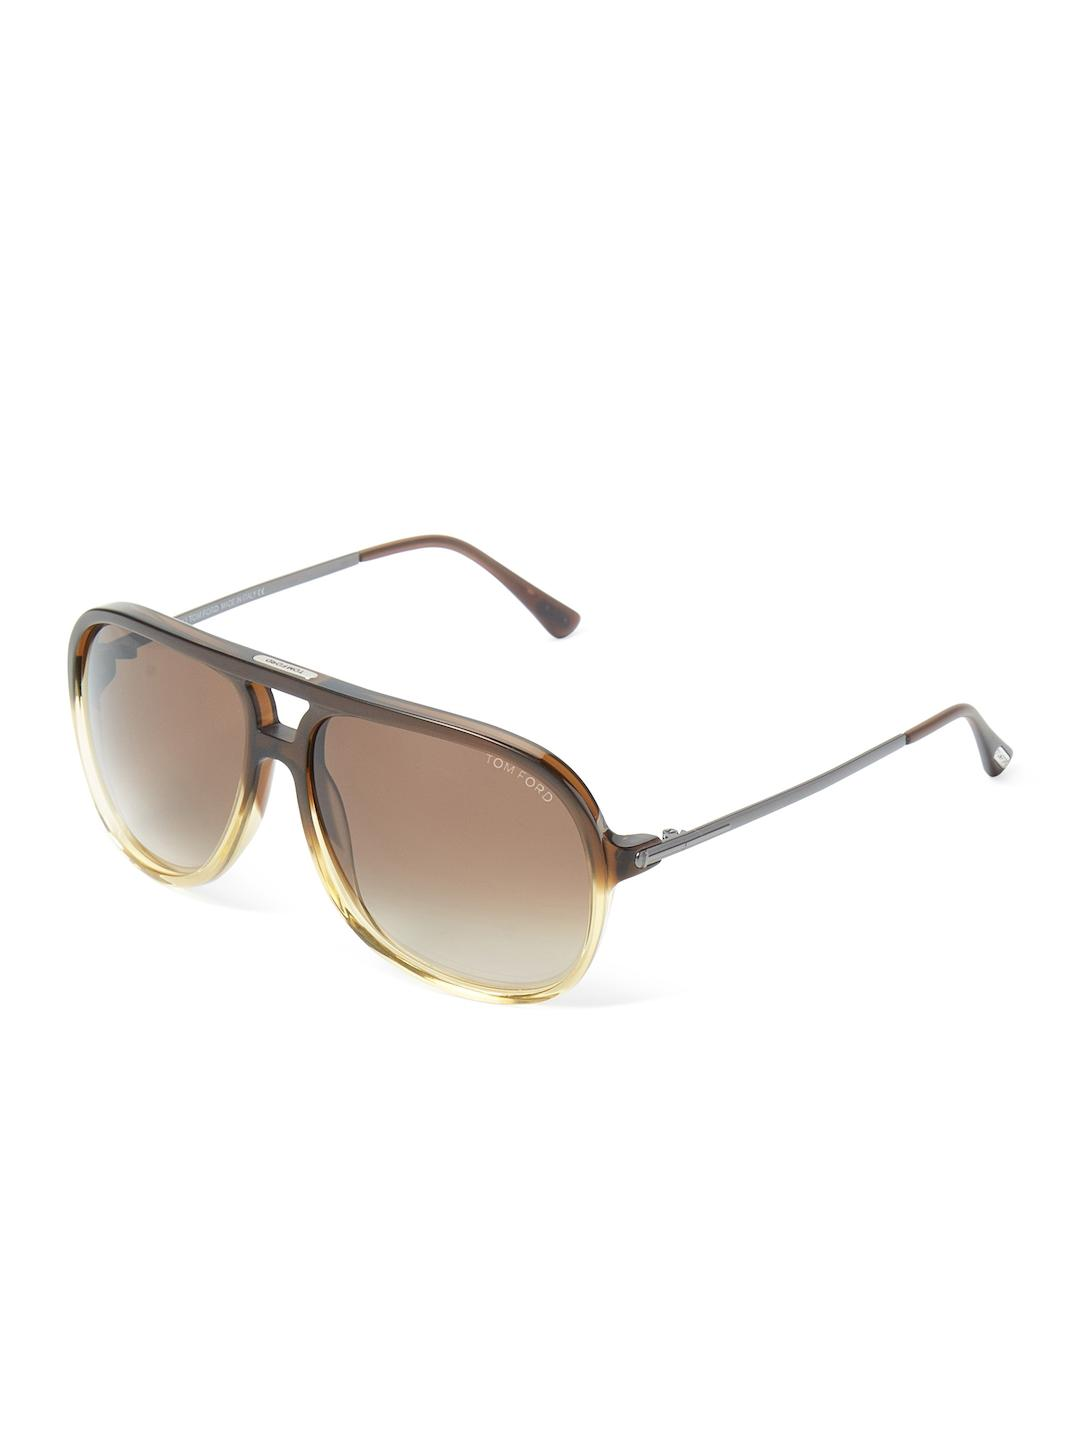 84c4458b734 Lyst - Tom Ford Damian Square Aviator Frame in Brown